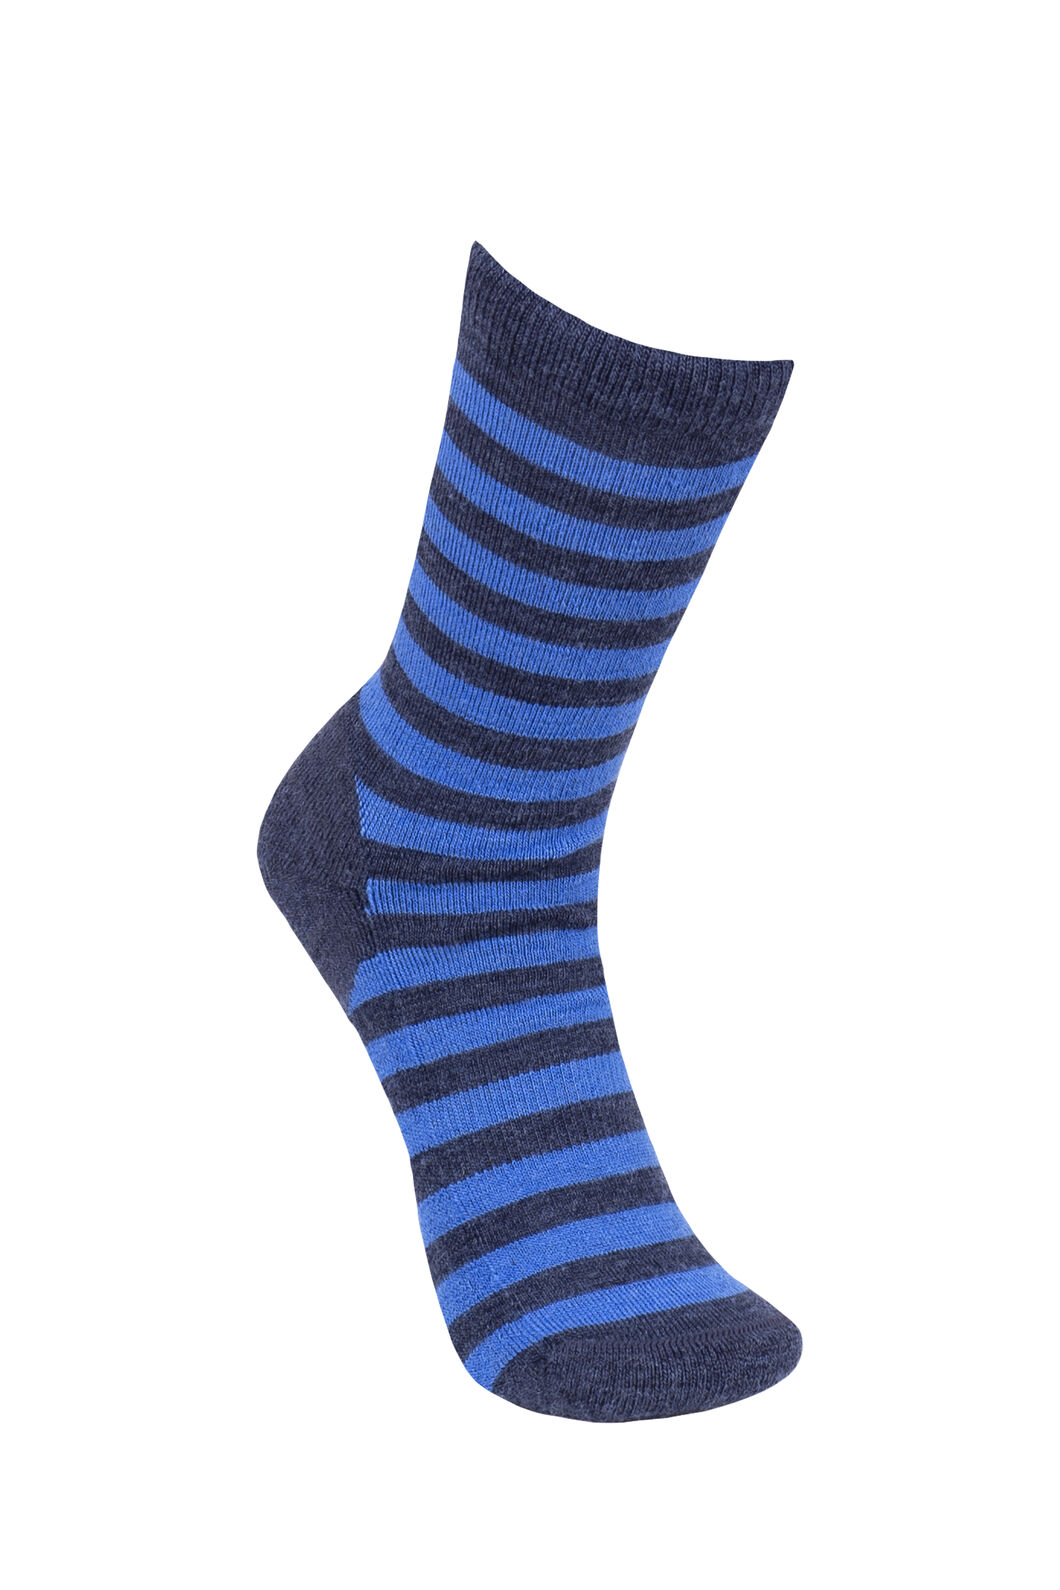 Macpac Footprint Socks Kids', Skydiver/Black Iris, hi-res